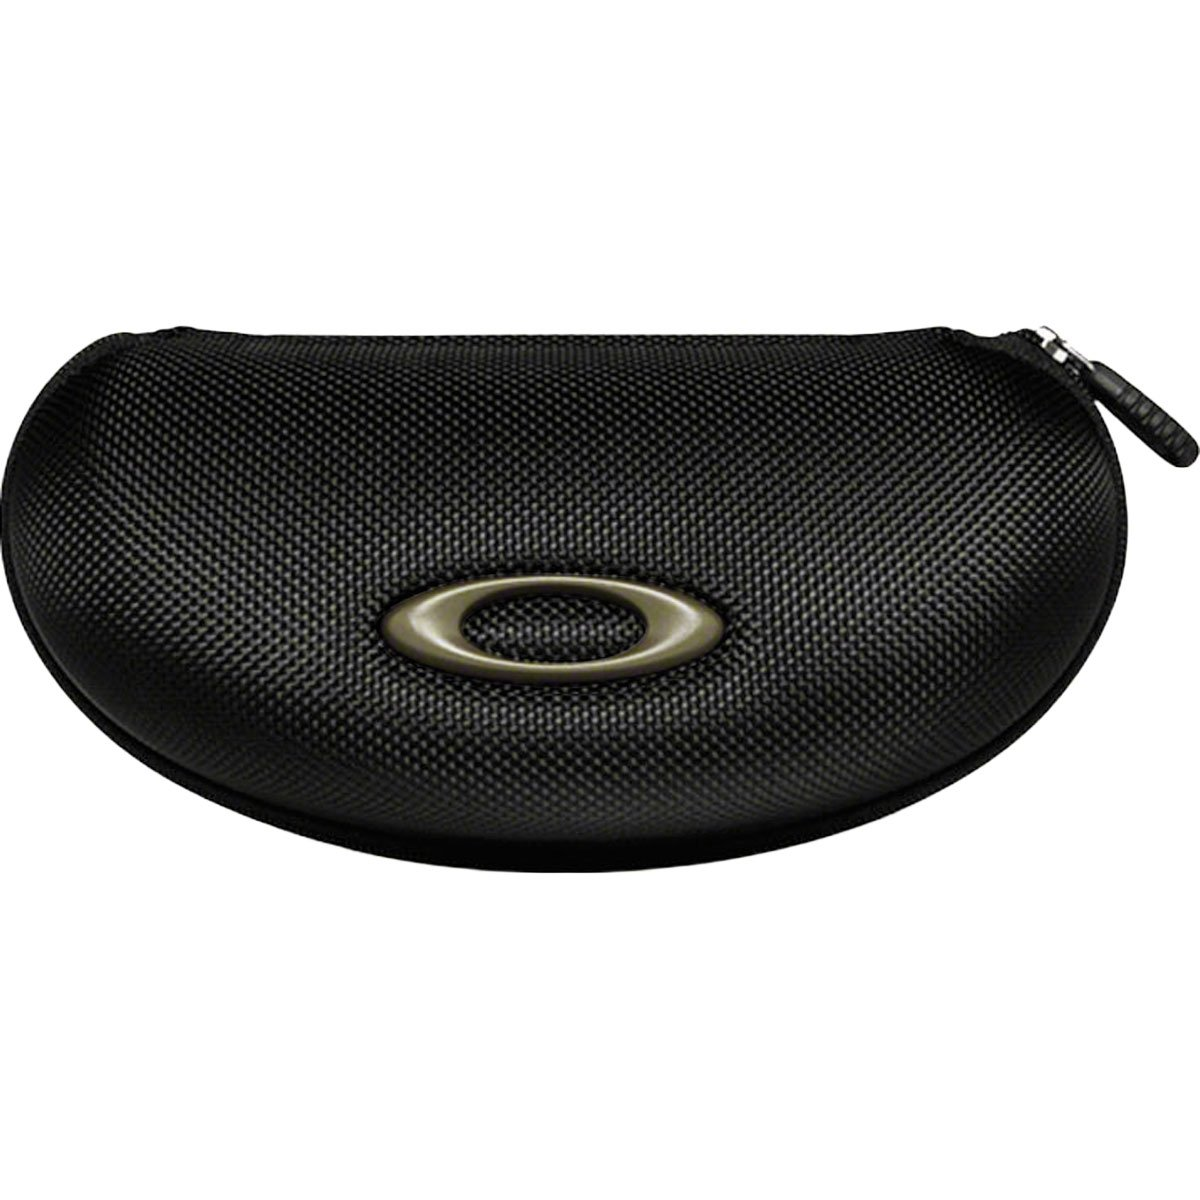 Oakley Racing Jacket Adult Soft Vault Case Sunglass Accessories - Black/One Size by Oakley